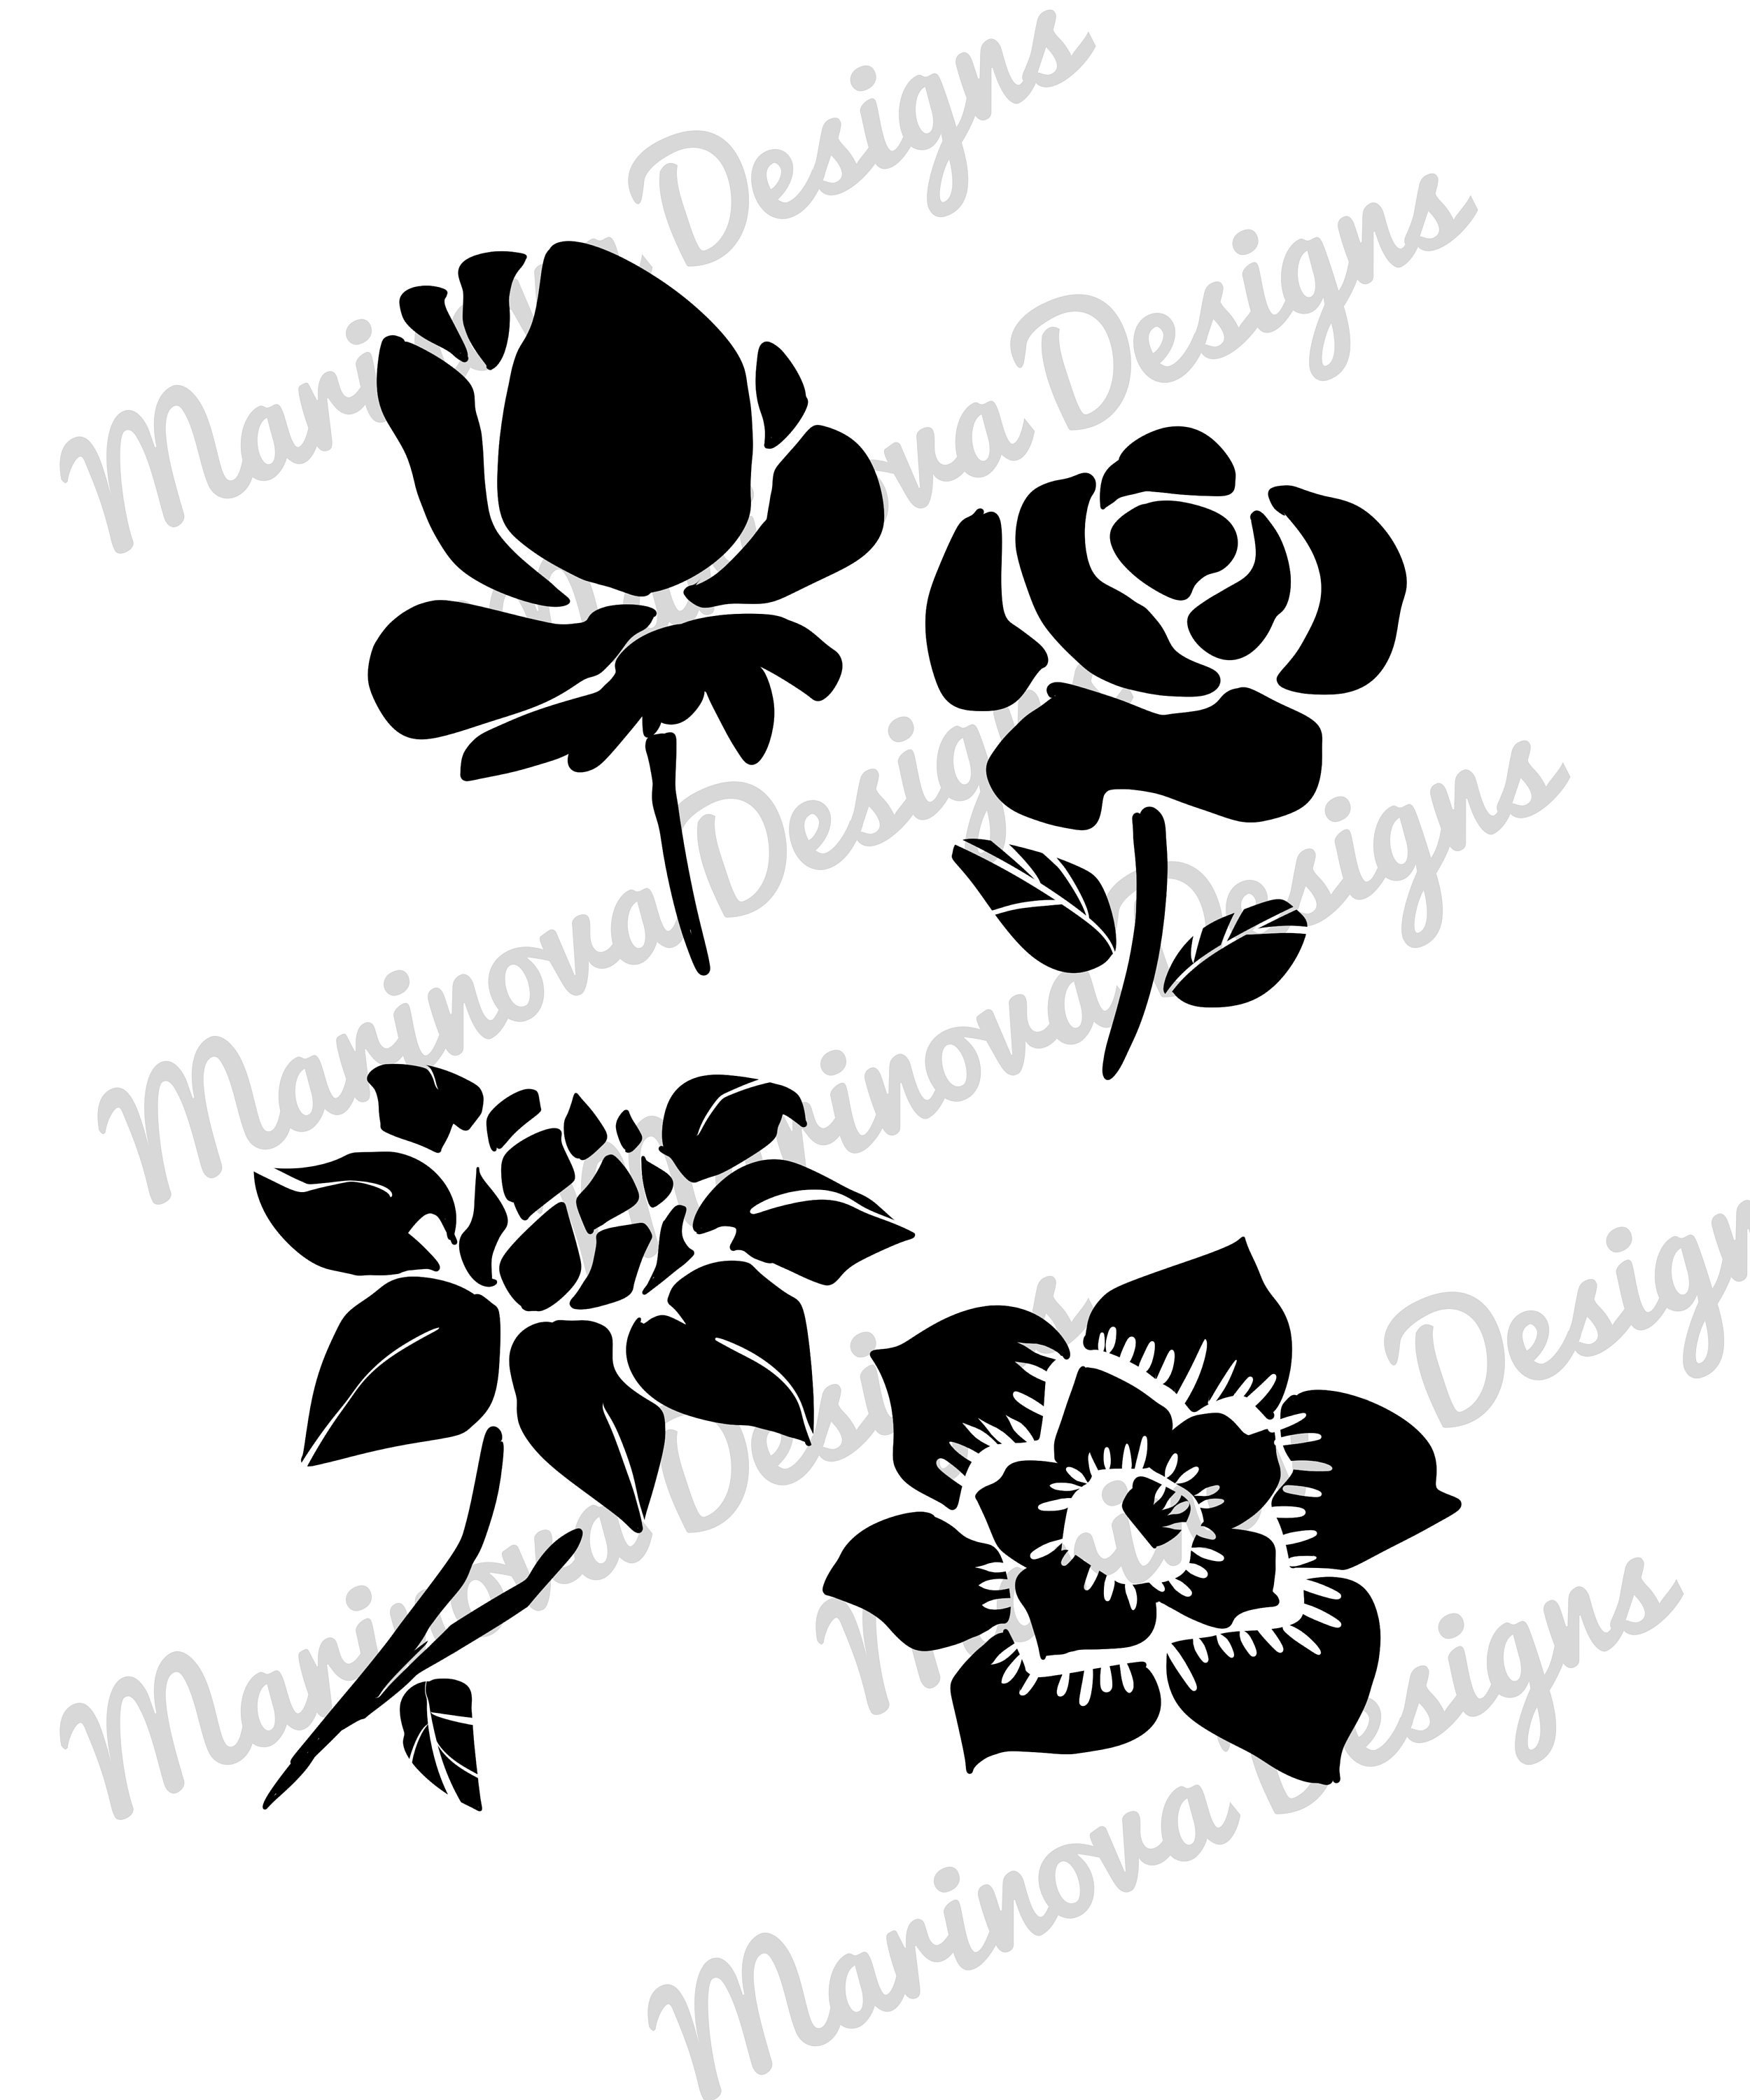 Flowers Silhouette Clip Art X 4 Paper Pack For Crafts Origami Etsy